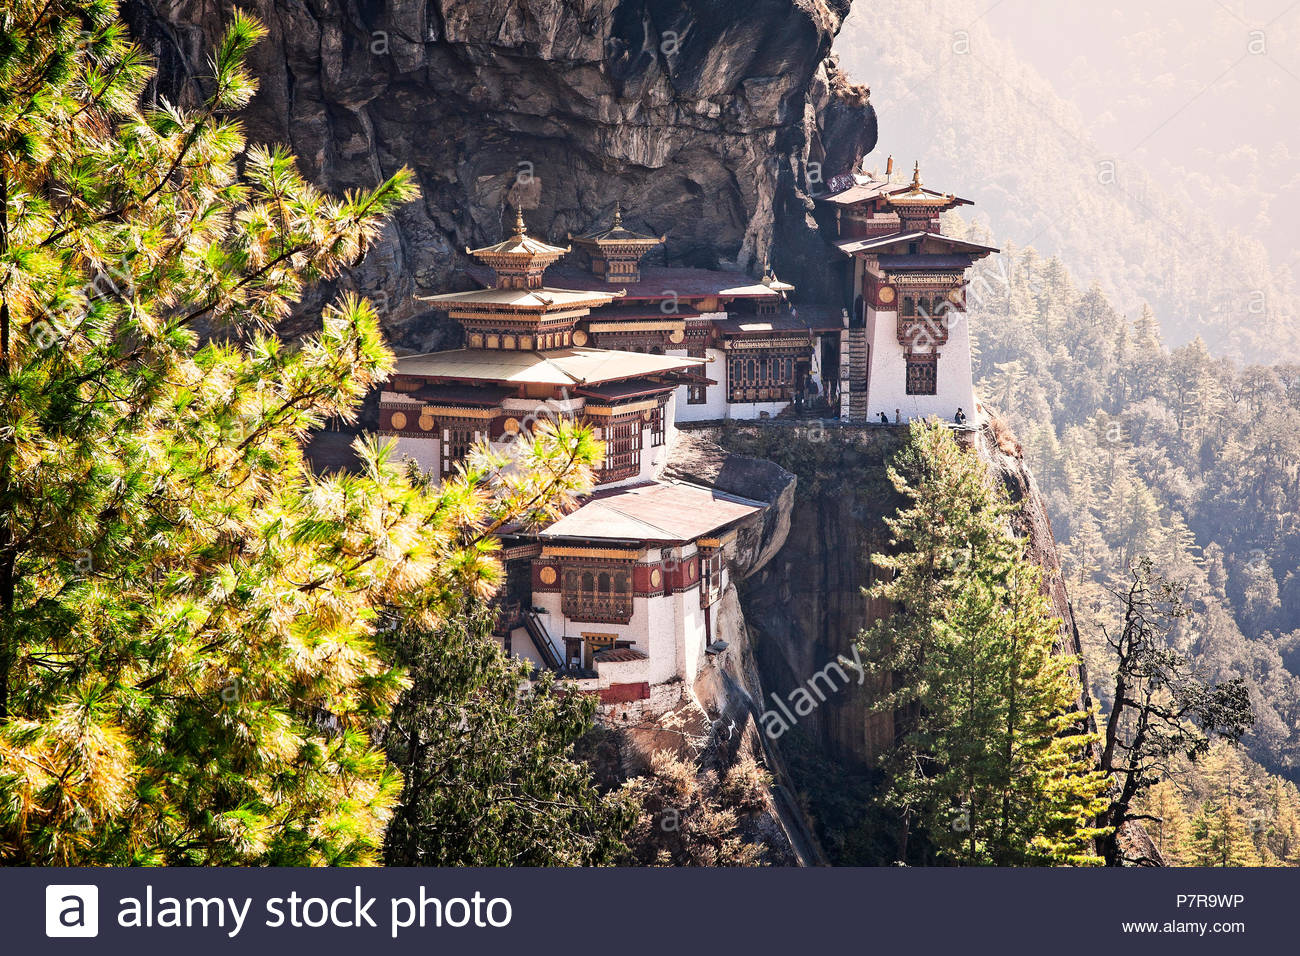 Taktsang Palphug Monastery or the Tigers Nest near Paro Bhutan was originally constructued in 1692. - Stock Image